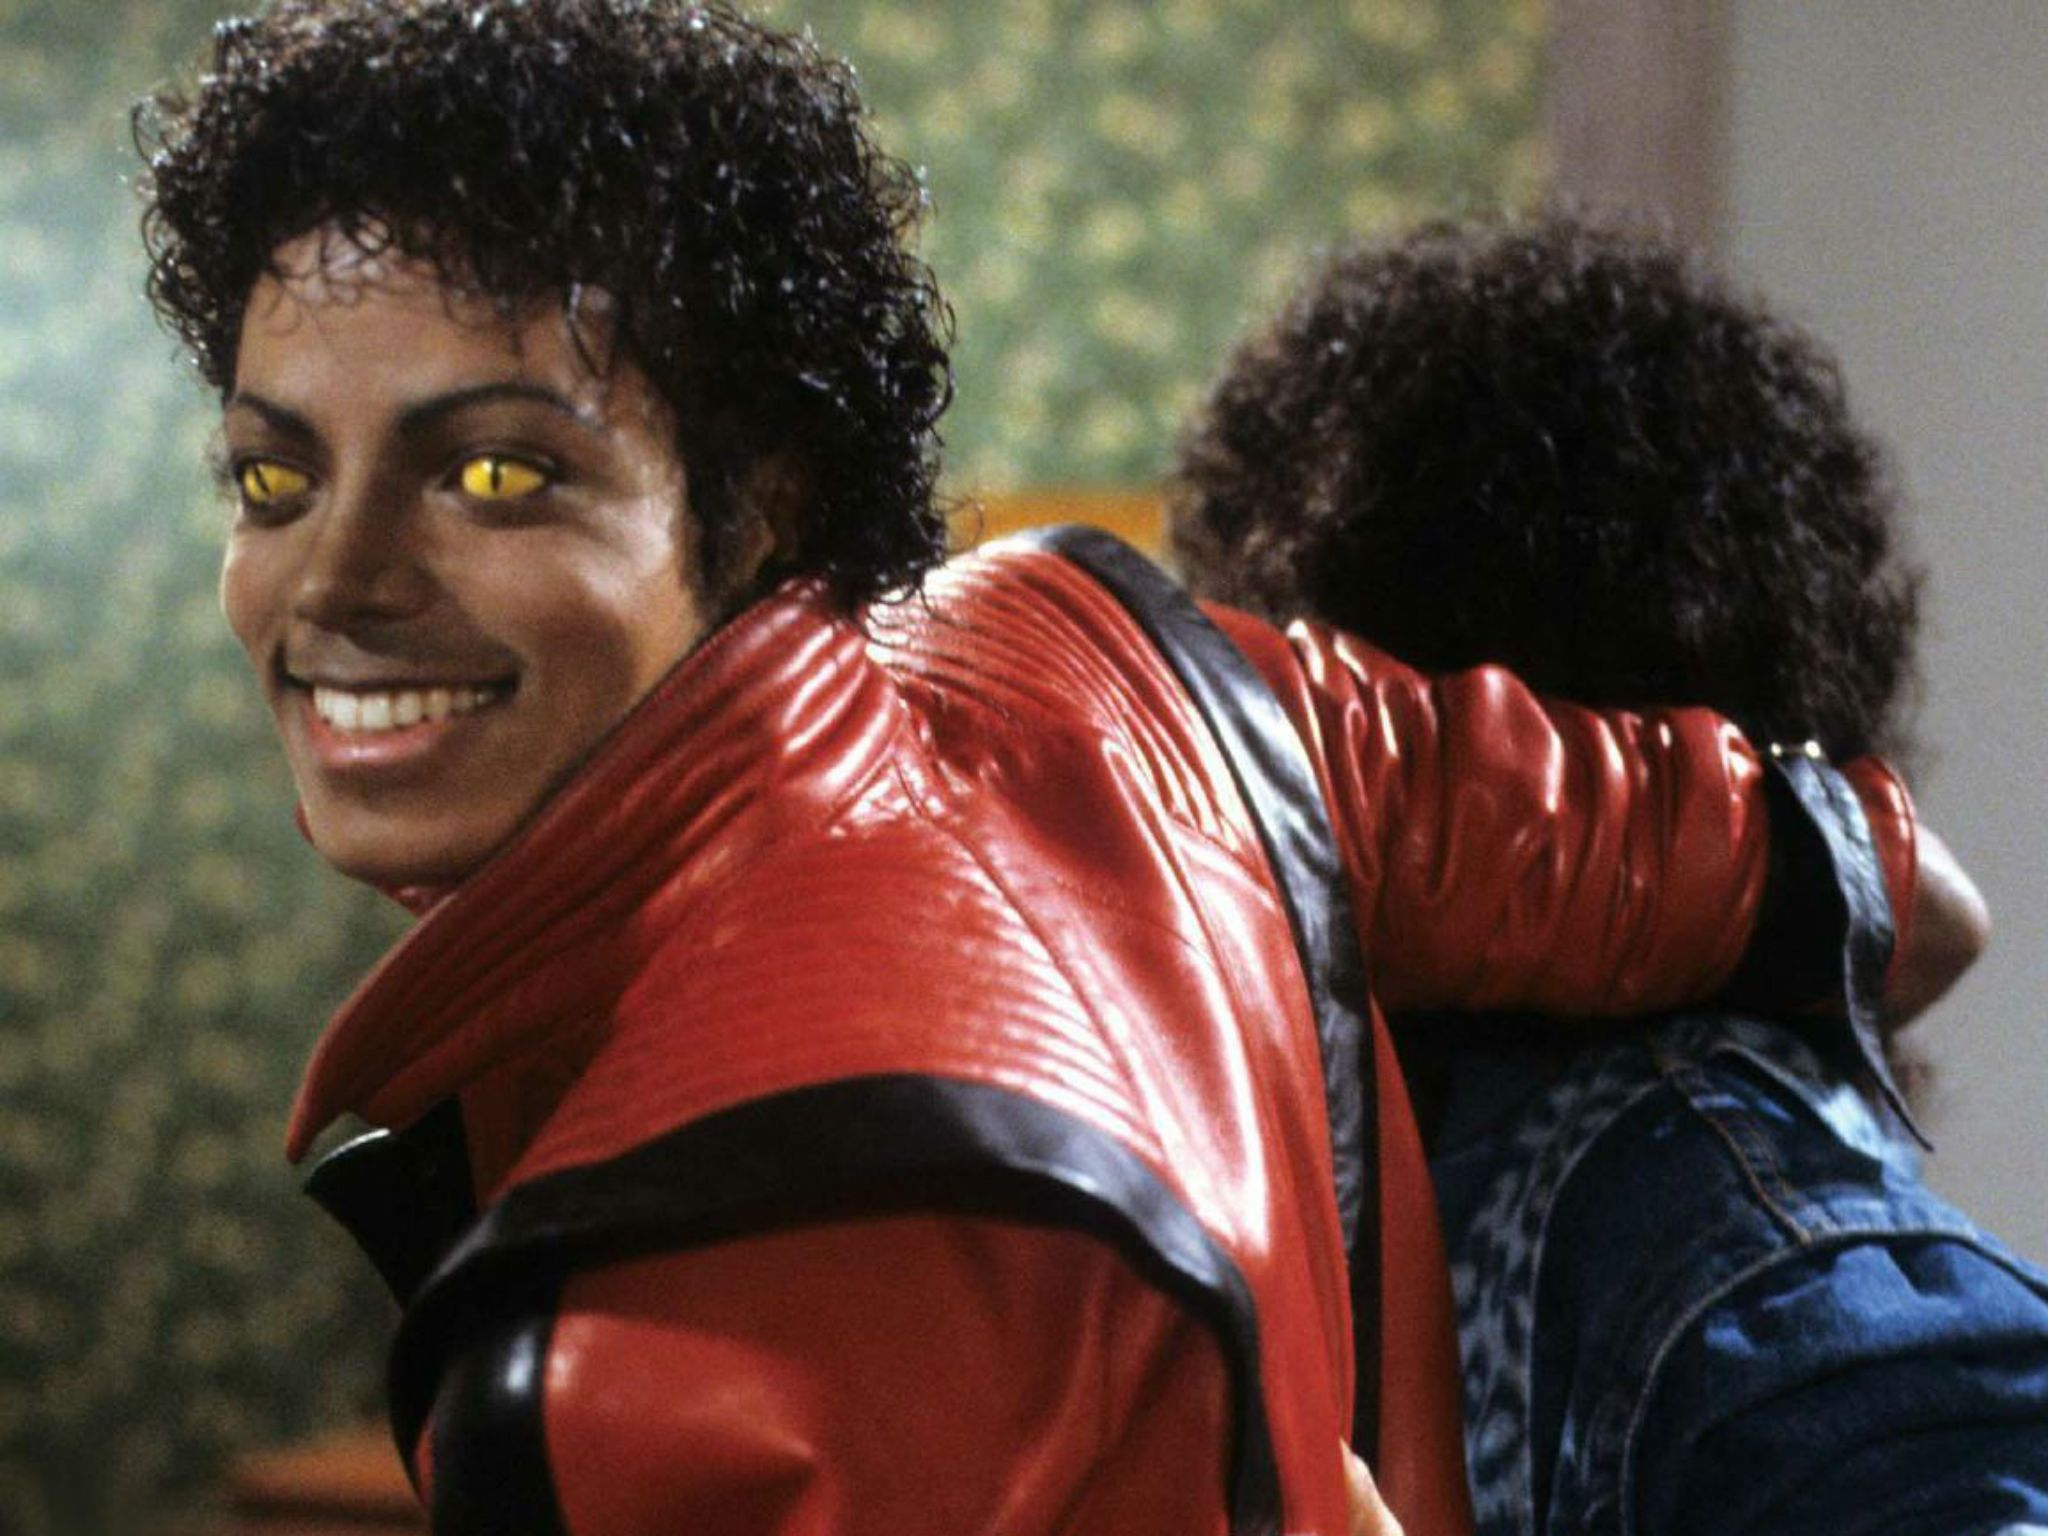 Thriller Michael Jackson Jpg 2048 1536 With Images Michael Jackson Thriller Micheal Jackson Michael Jackson